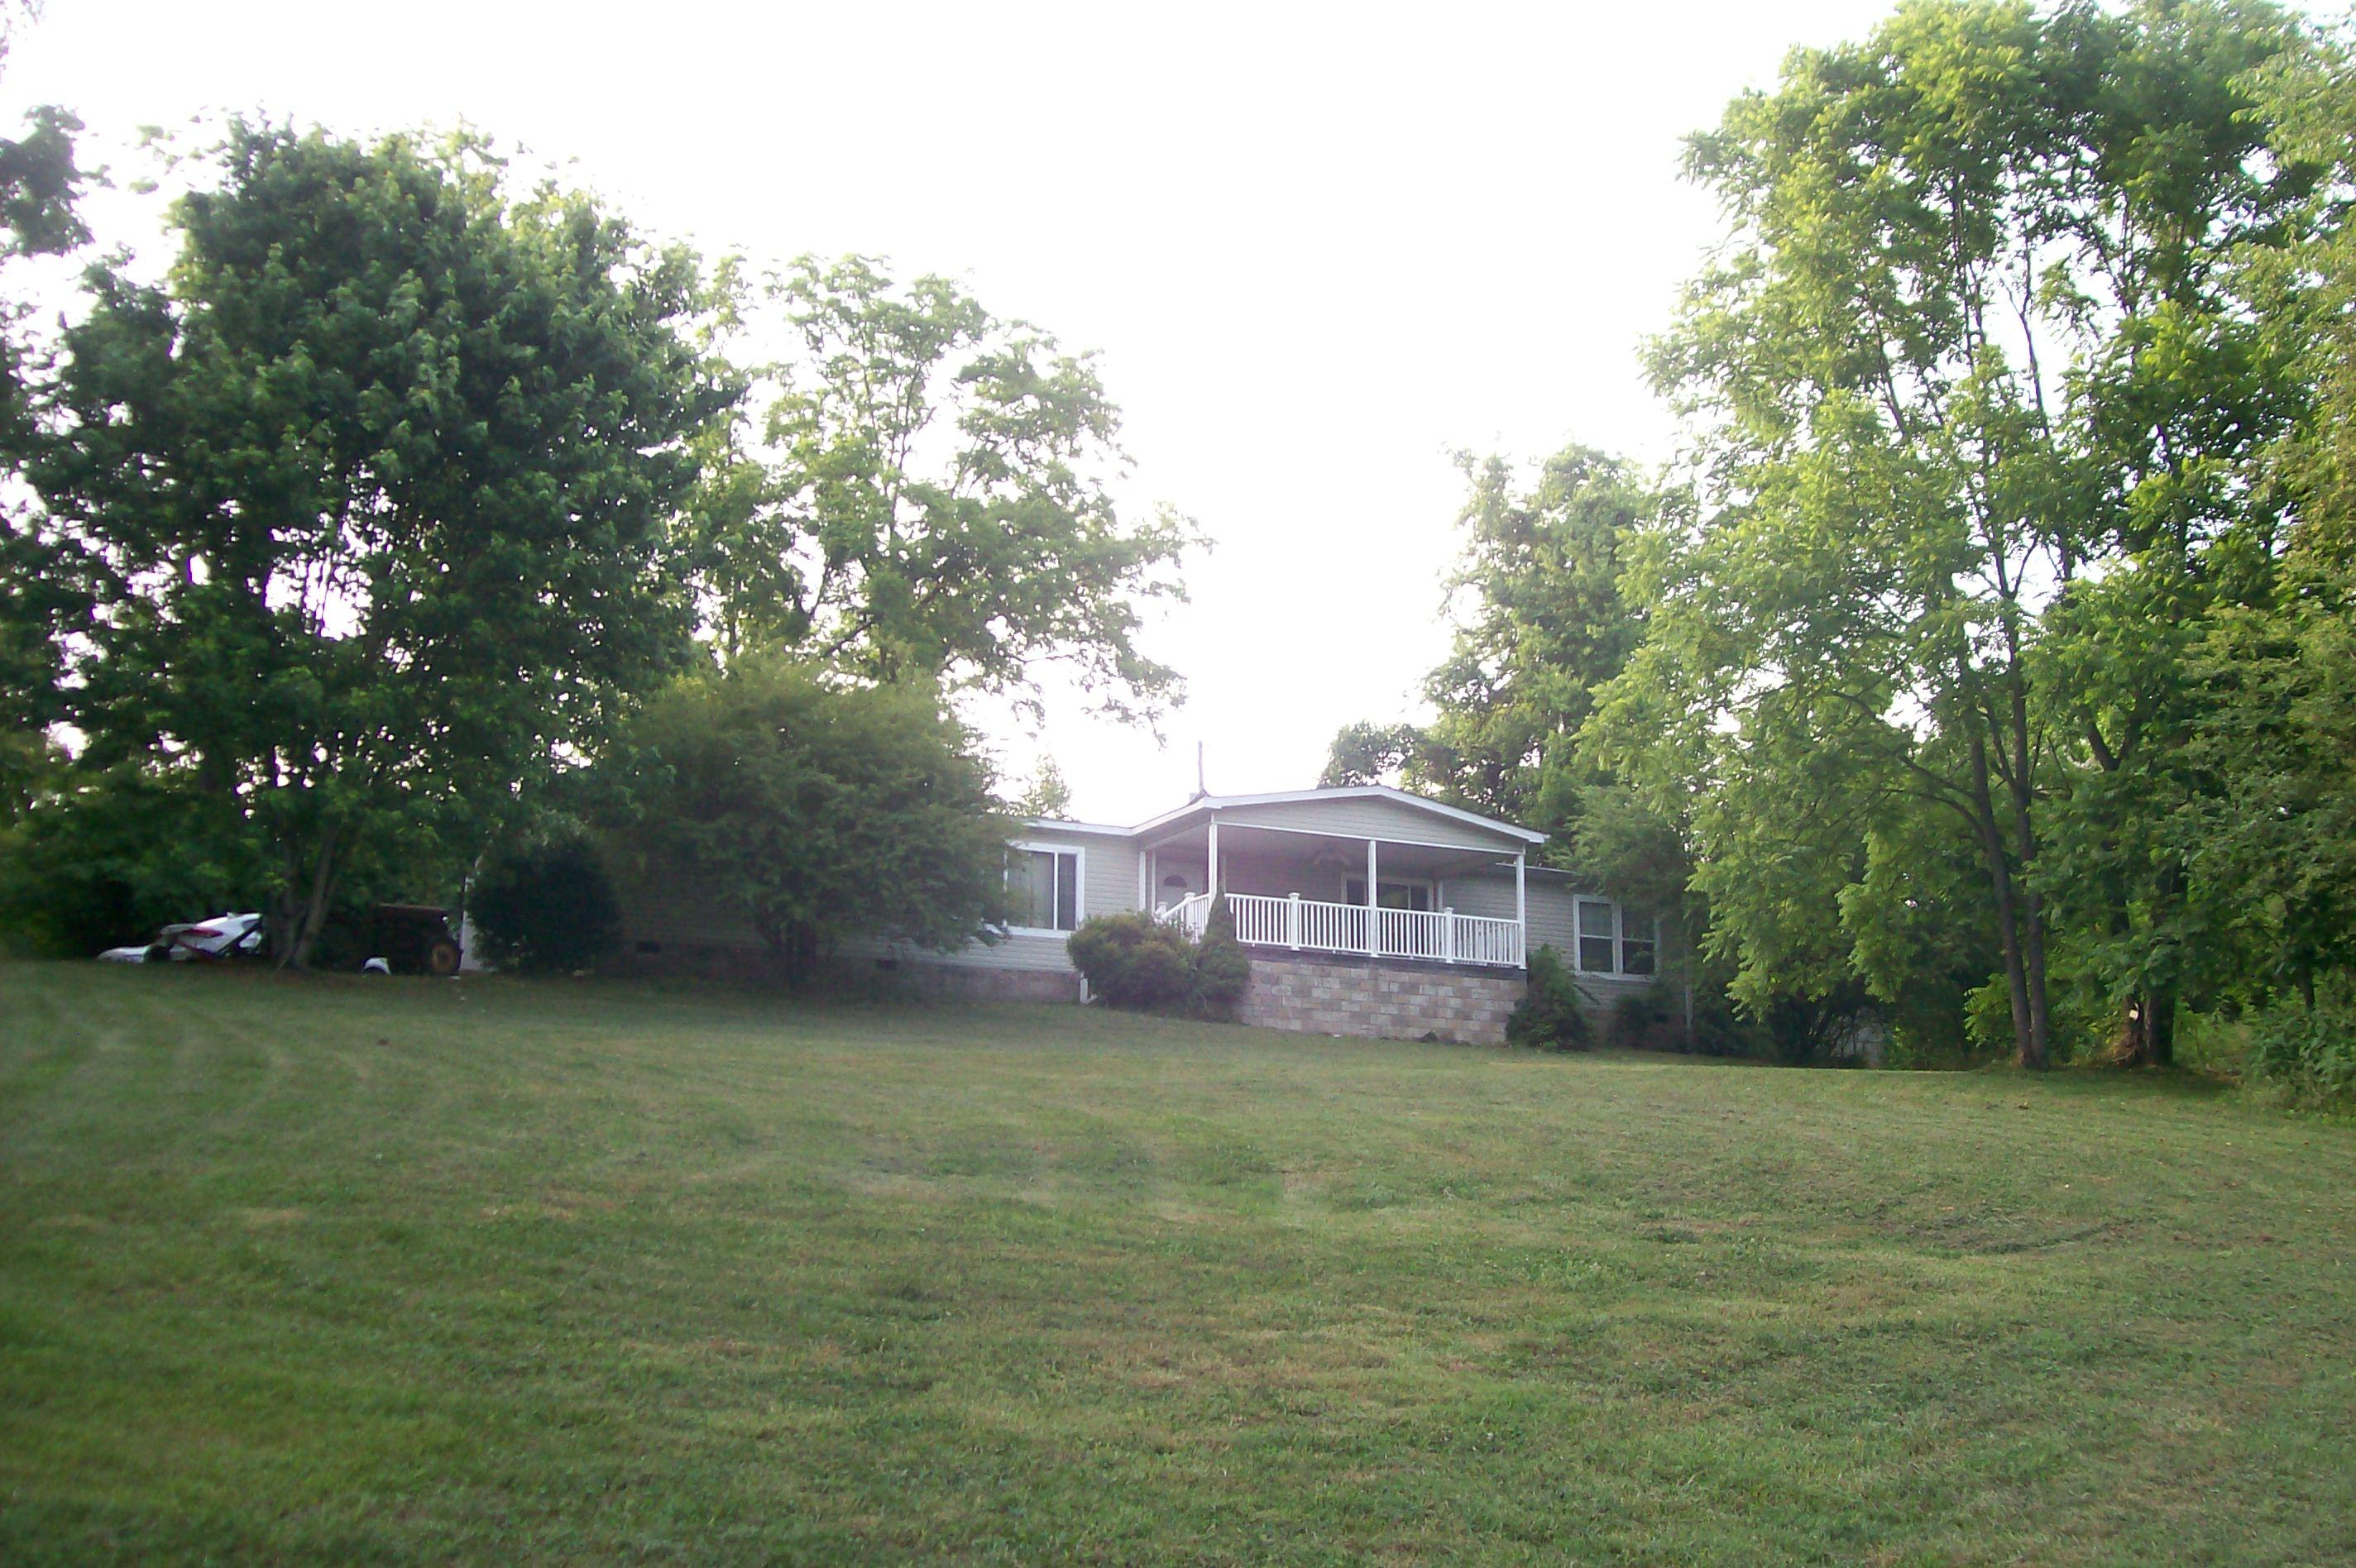 20190604134851974597000000-o Clinton anderson county homes for sale